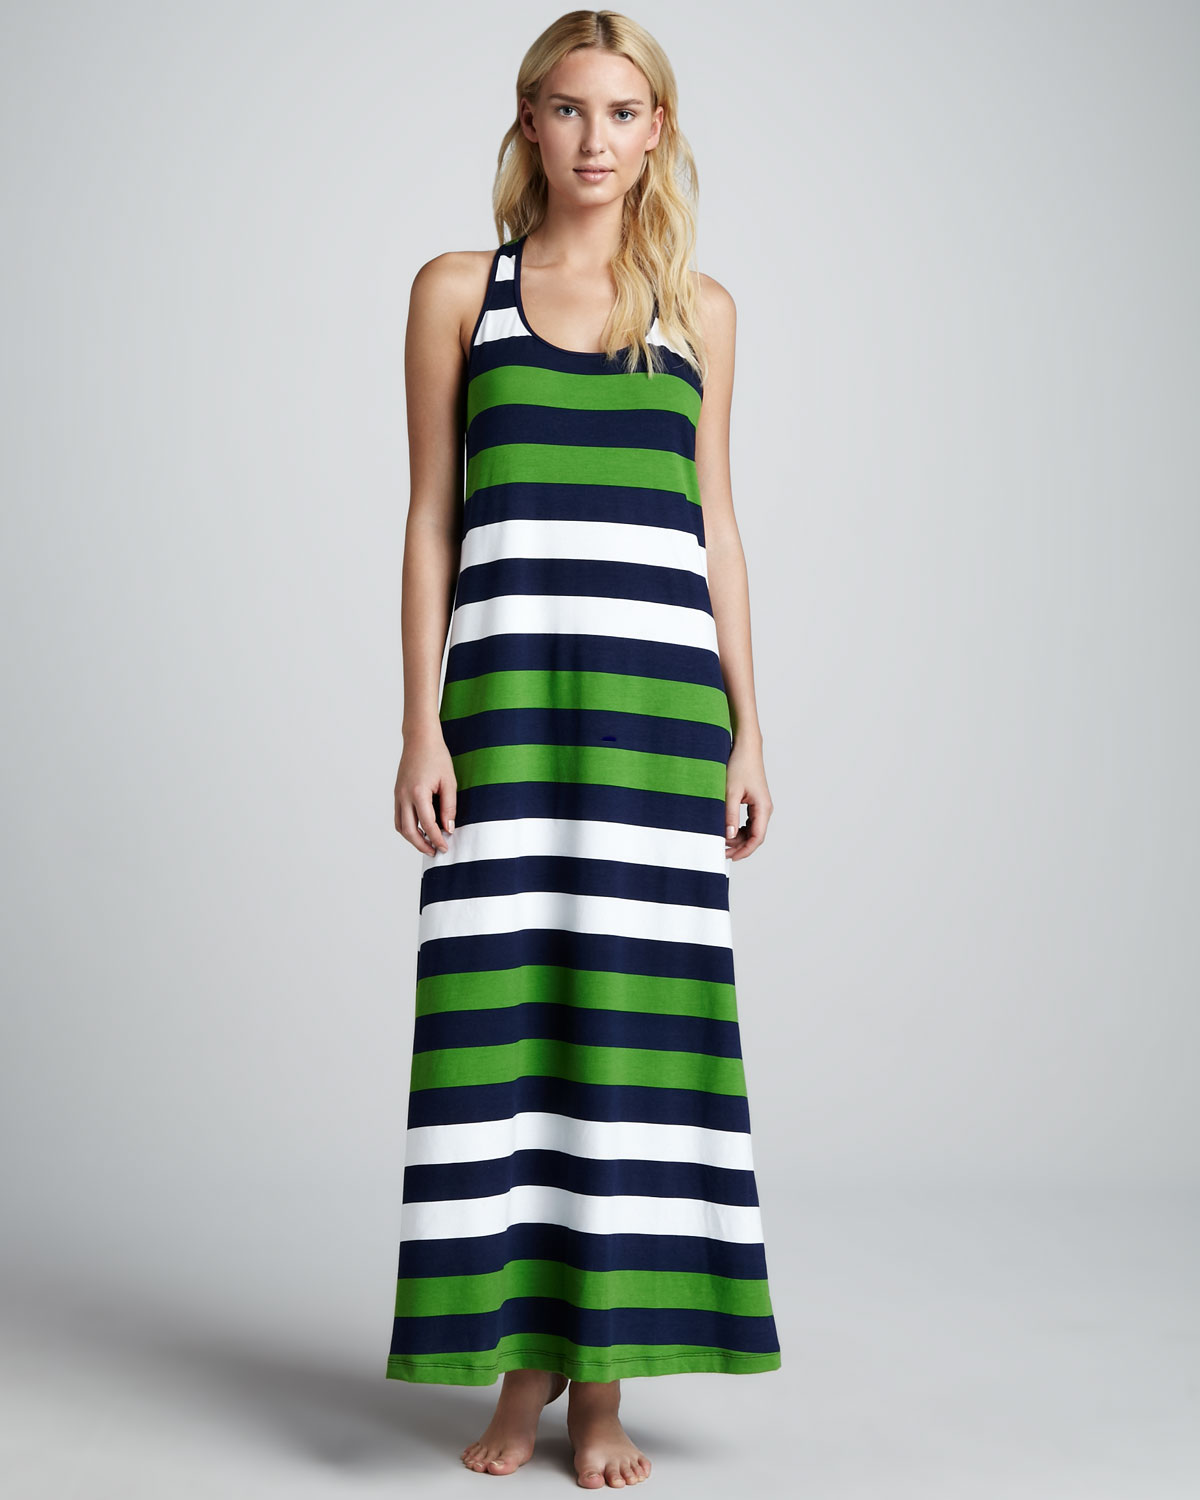 Tommy bahama Rugby Striped Maxi Dress in Green - Lyst